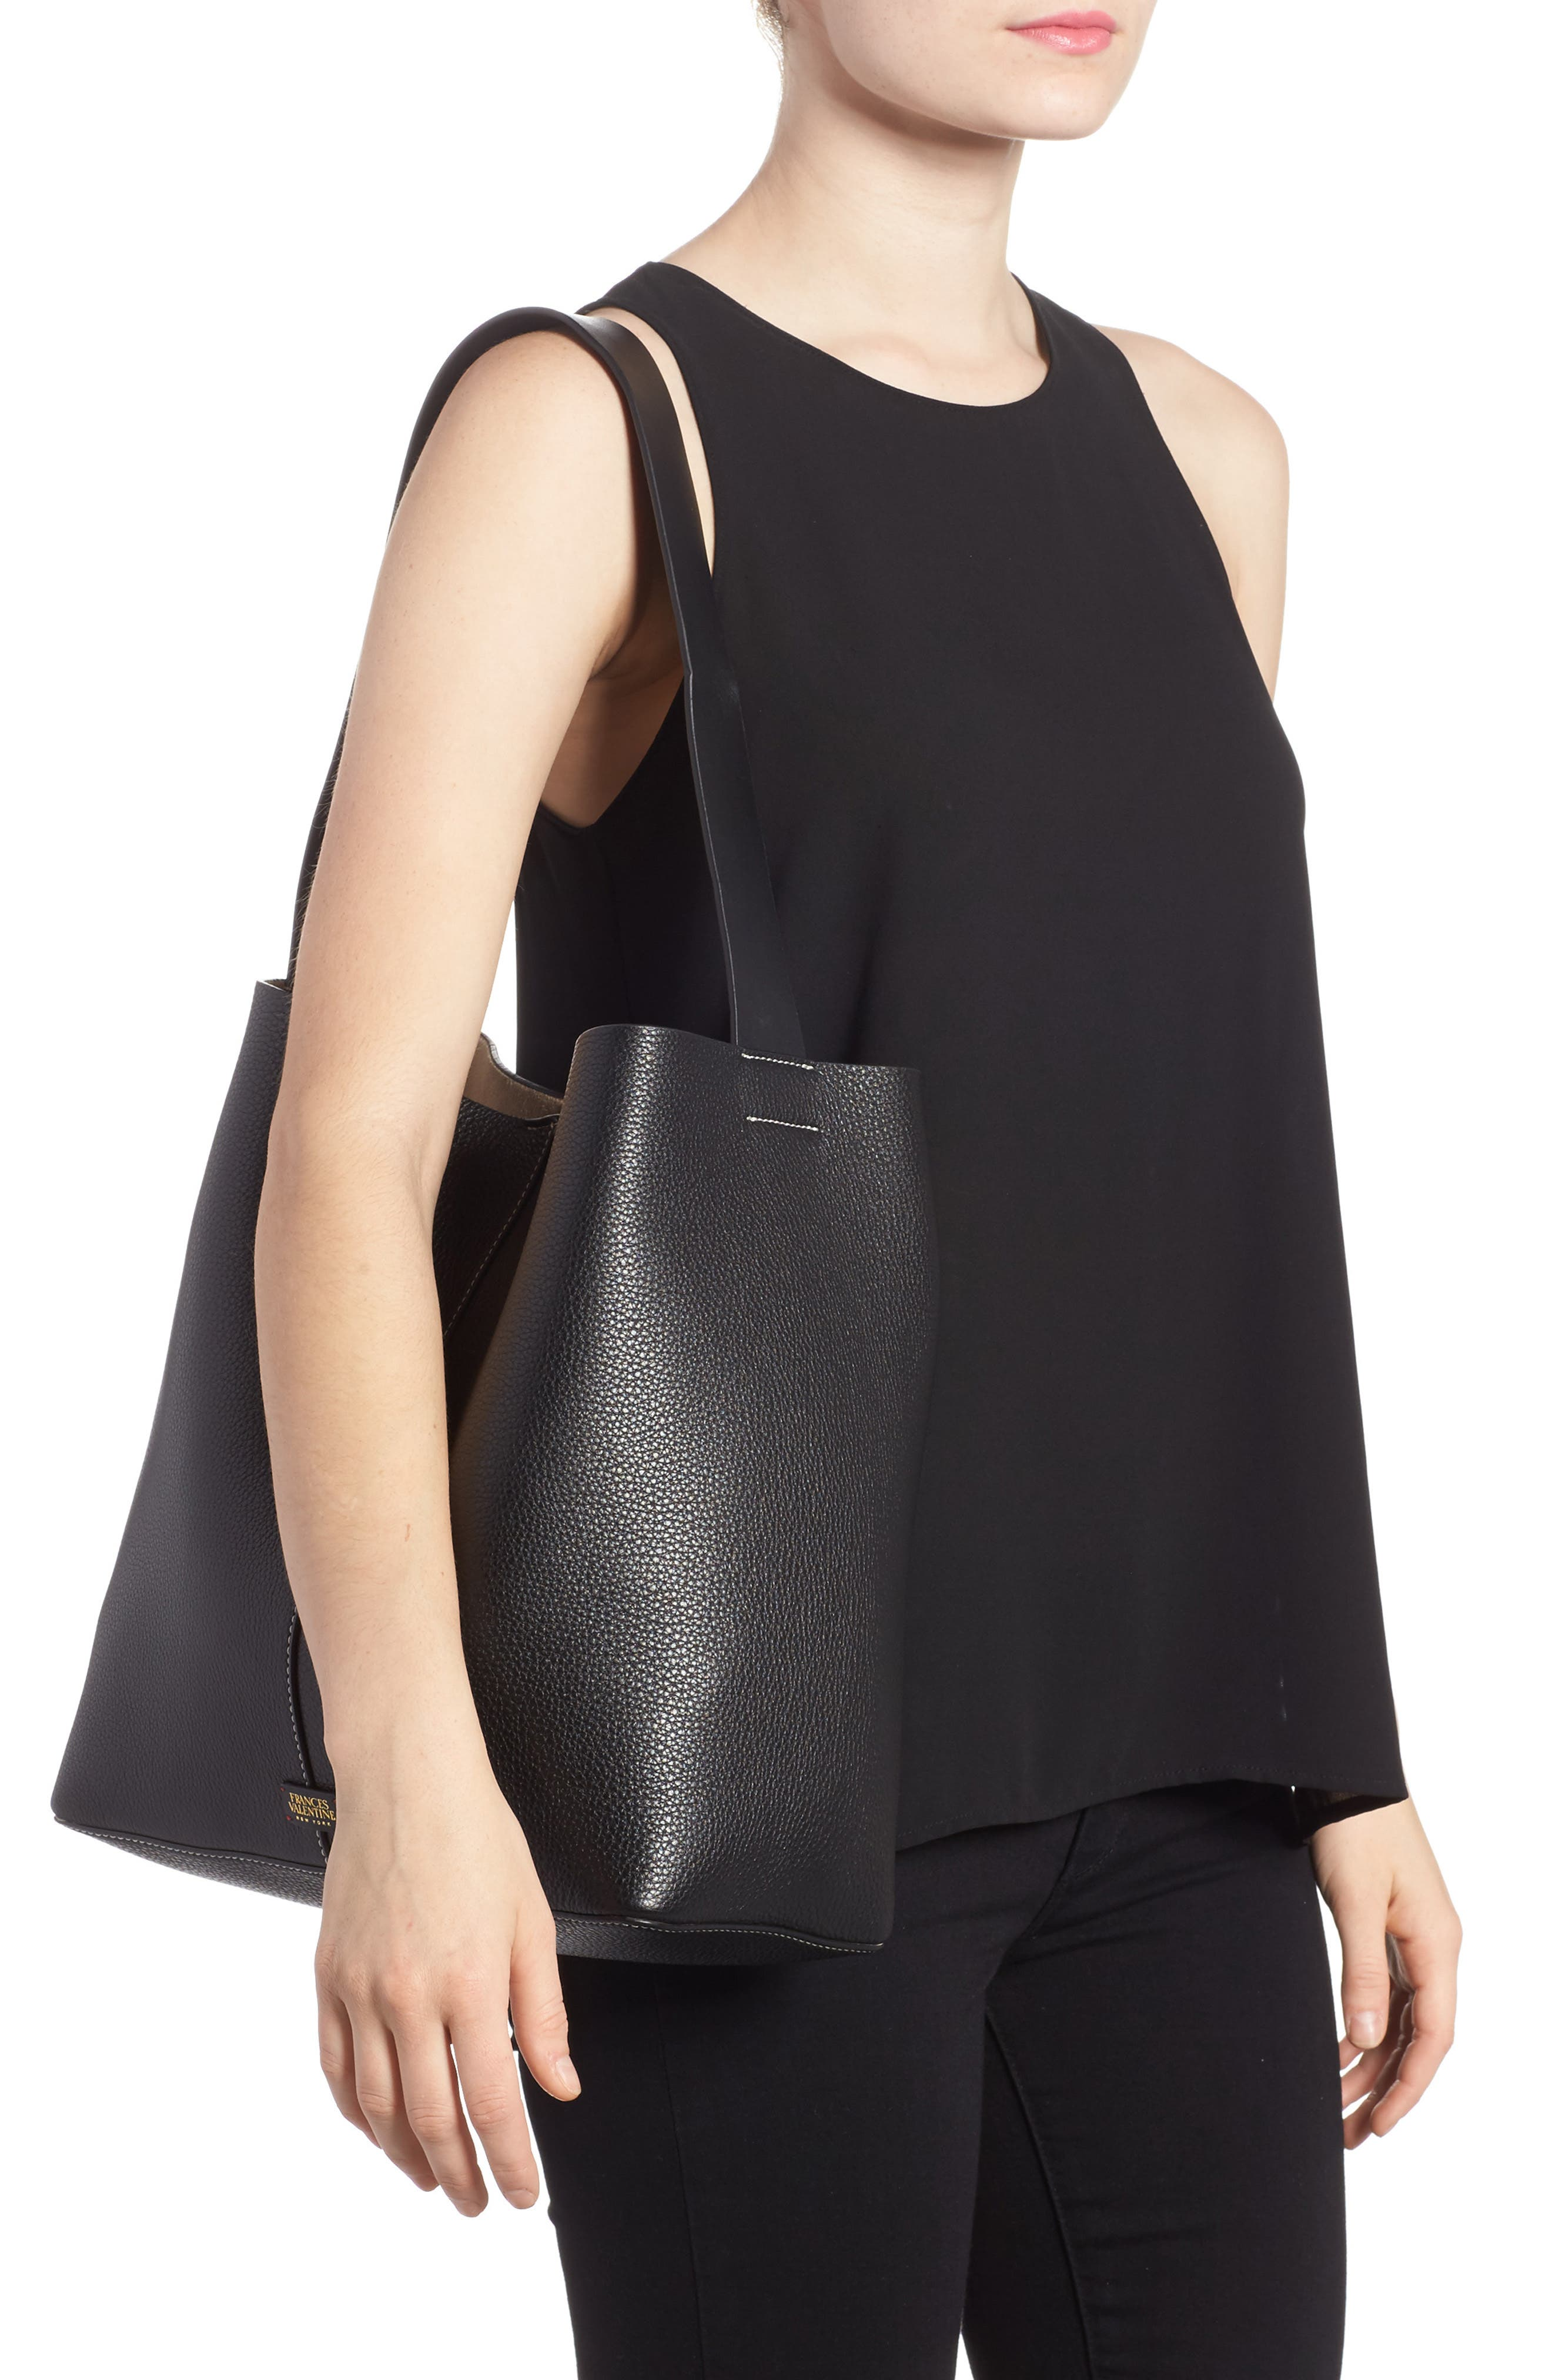 Large Leather Shoulder Bag,                             Alternate thumbnail 2, color,                             001